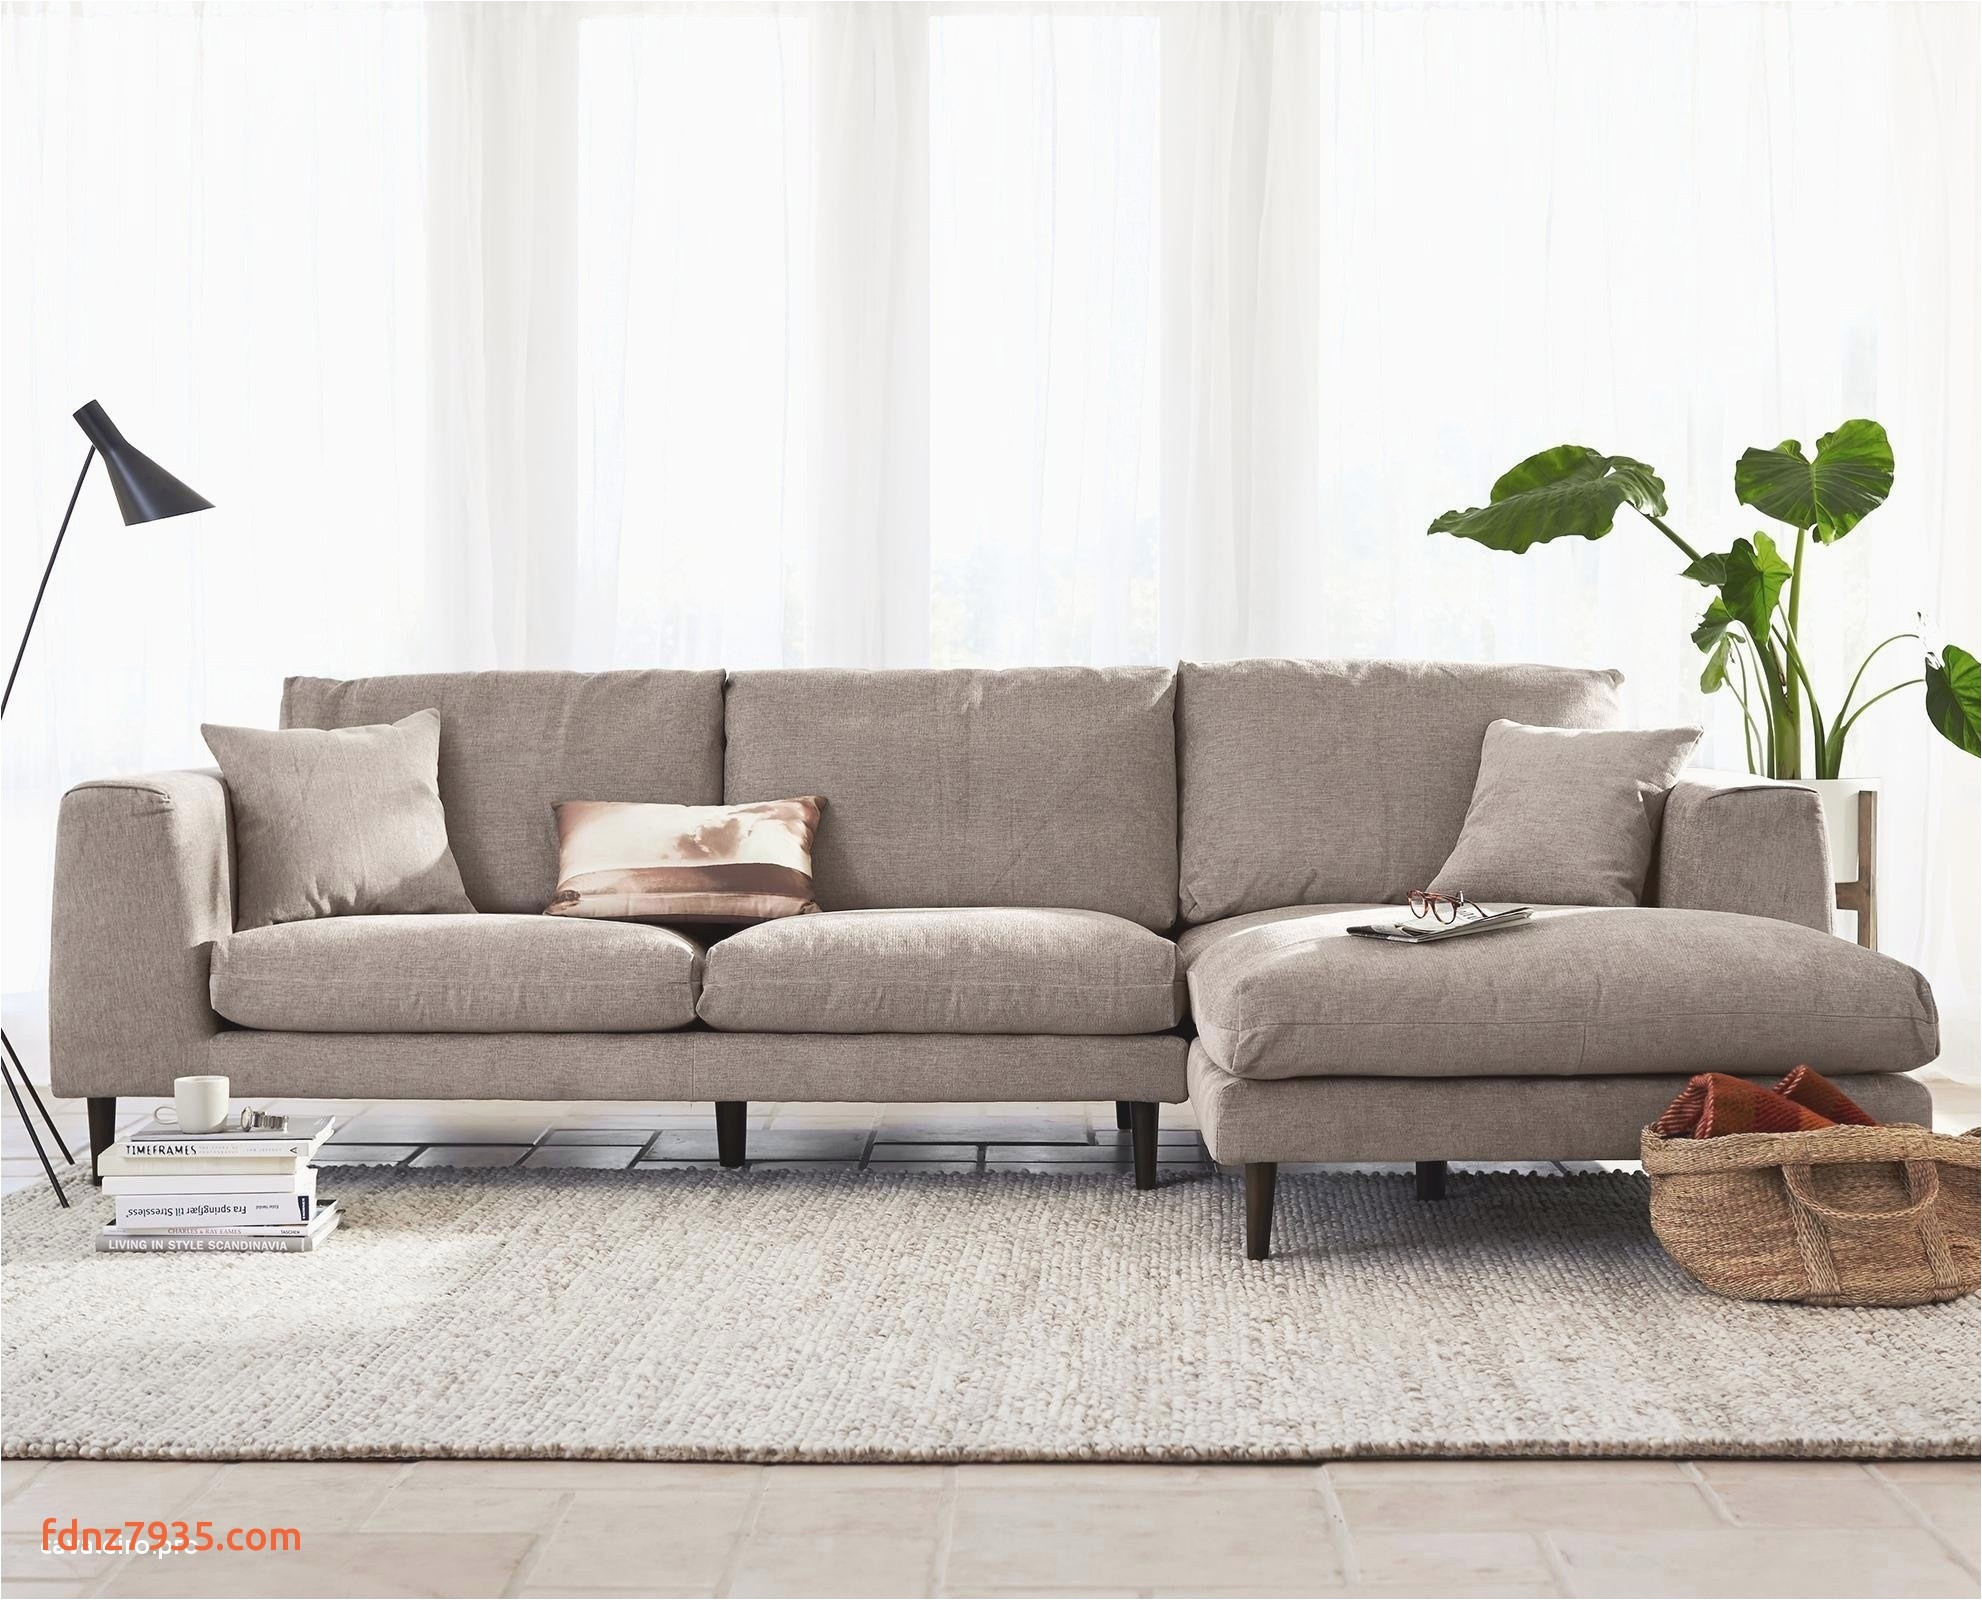 full size of furniture leather sectional couch unique furniture leather loveseats elegant navy loveseat 0d